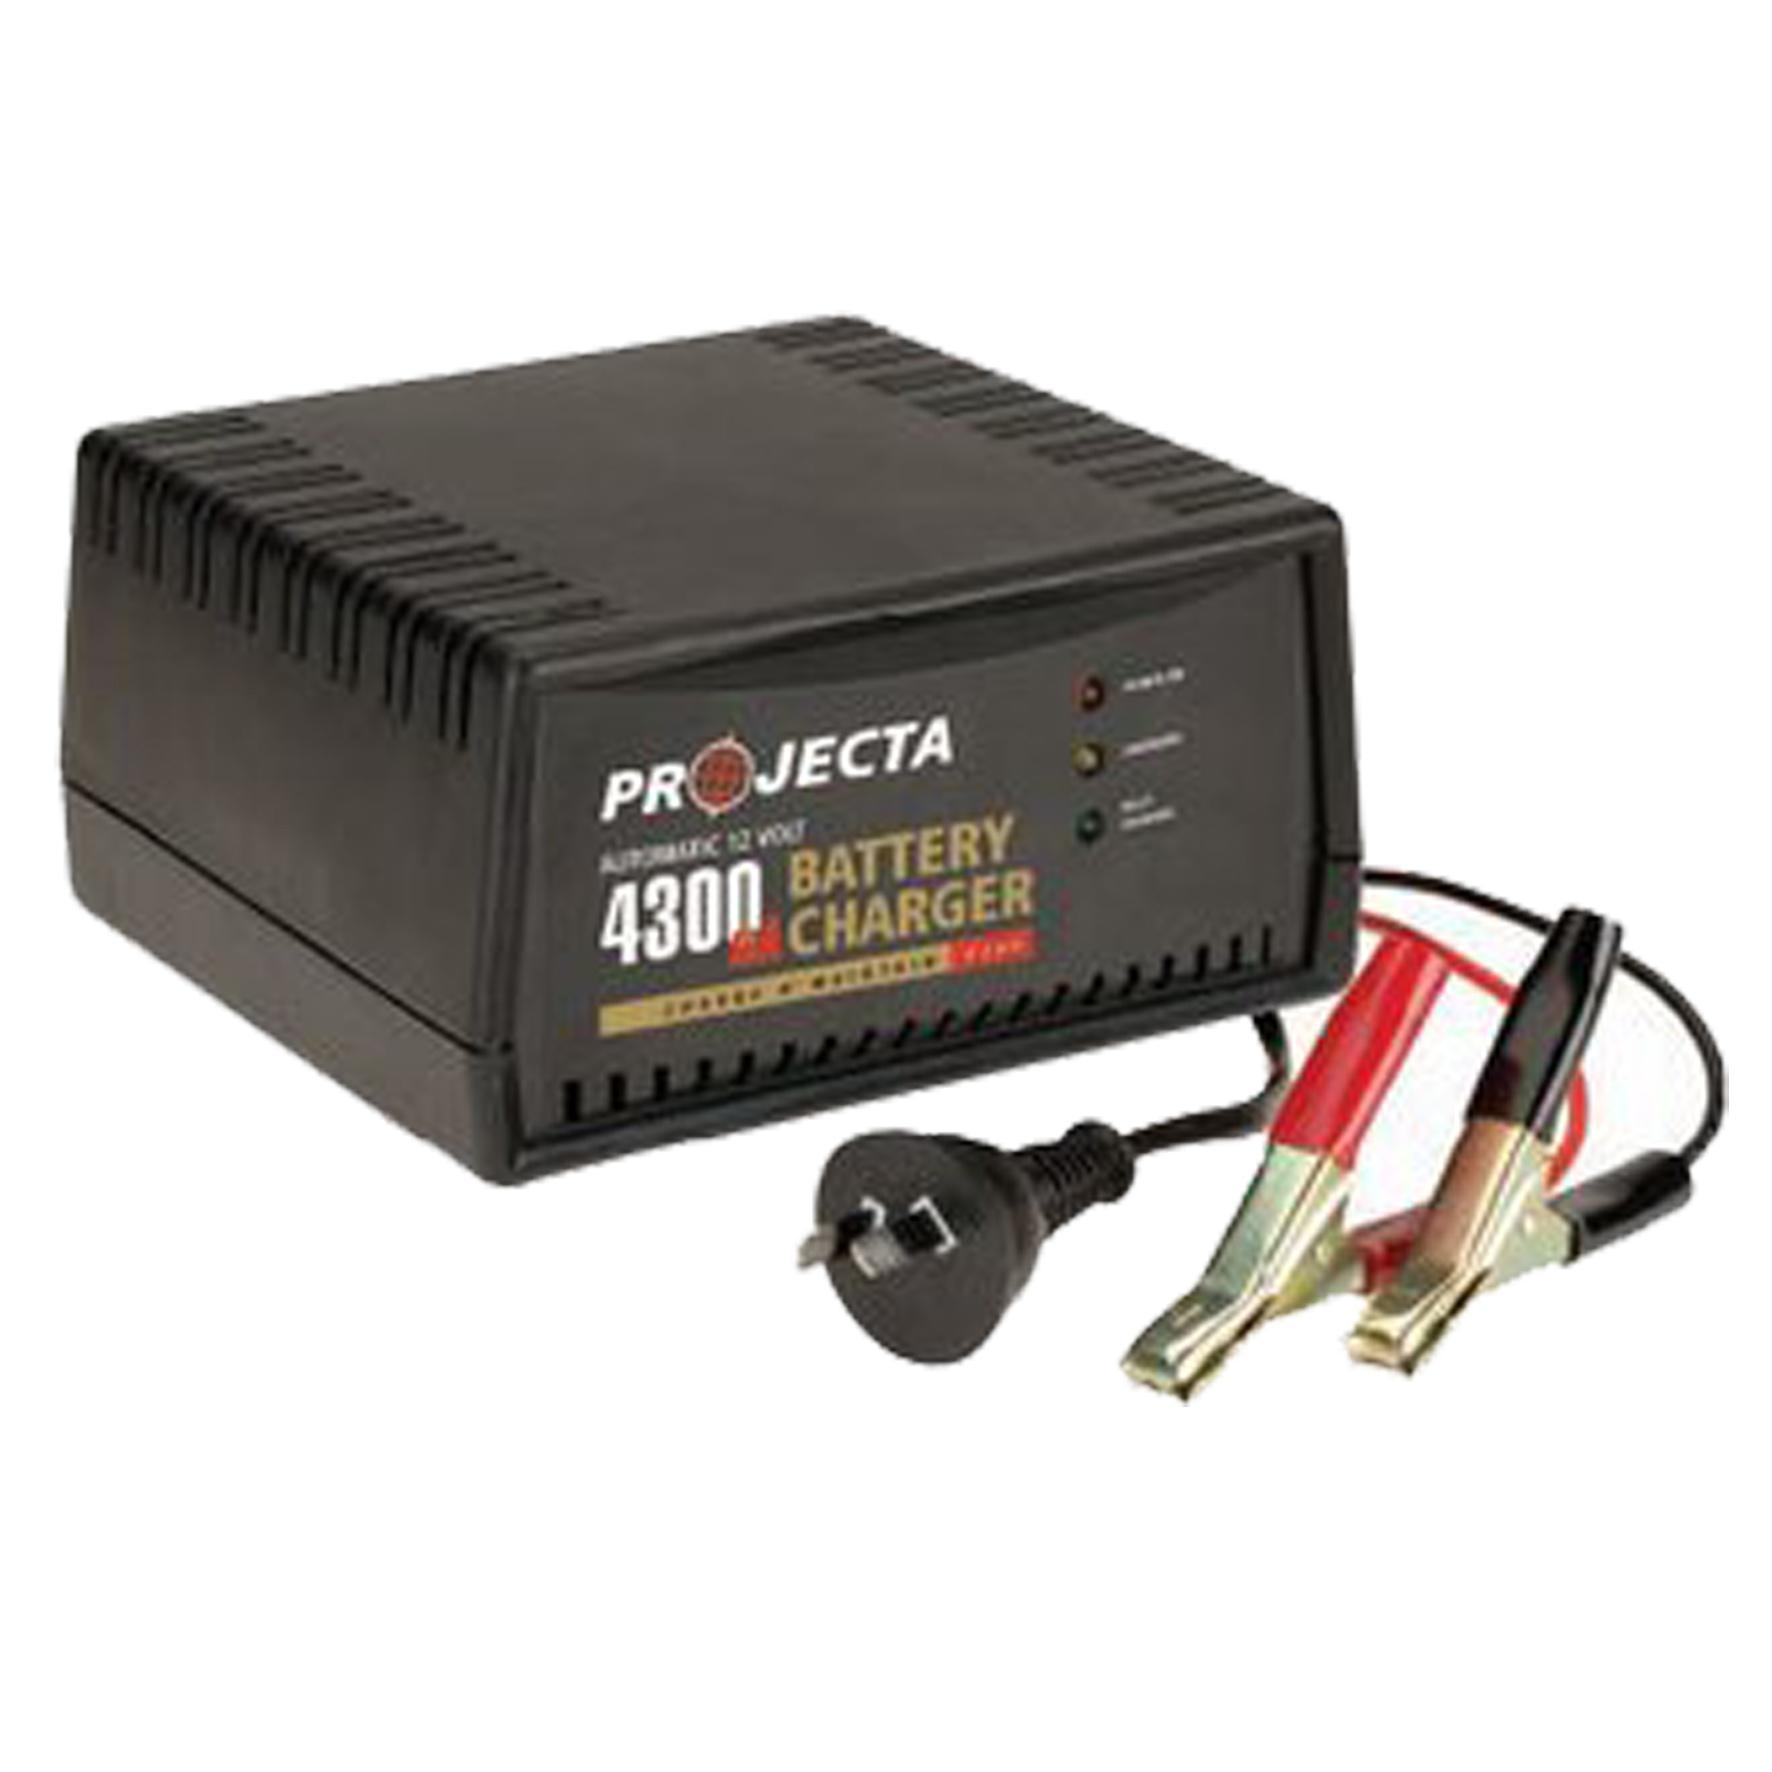 How To Charge A Car Battery Without A Charger >> Projecta AC600 Battery Charger | Home of 12 volt